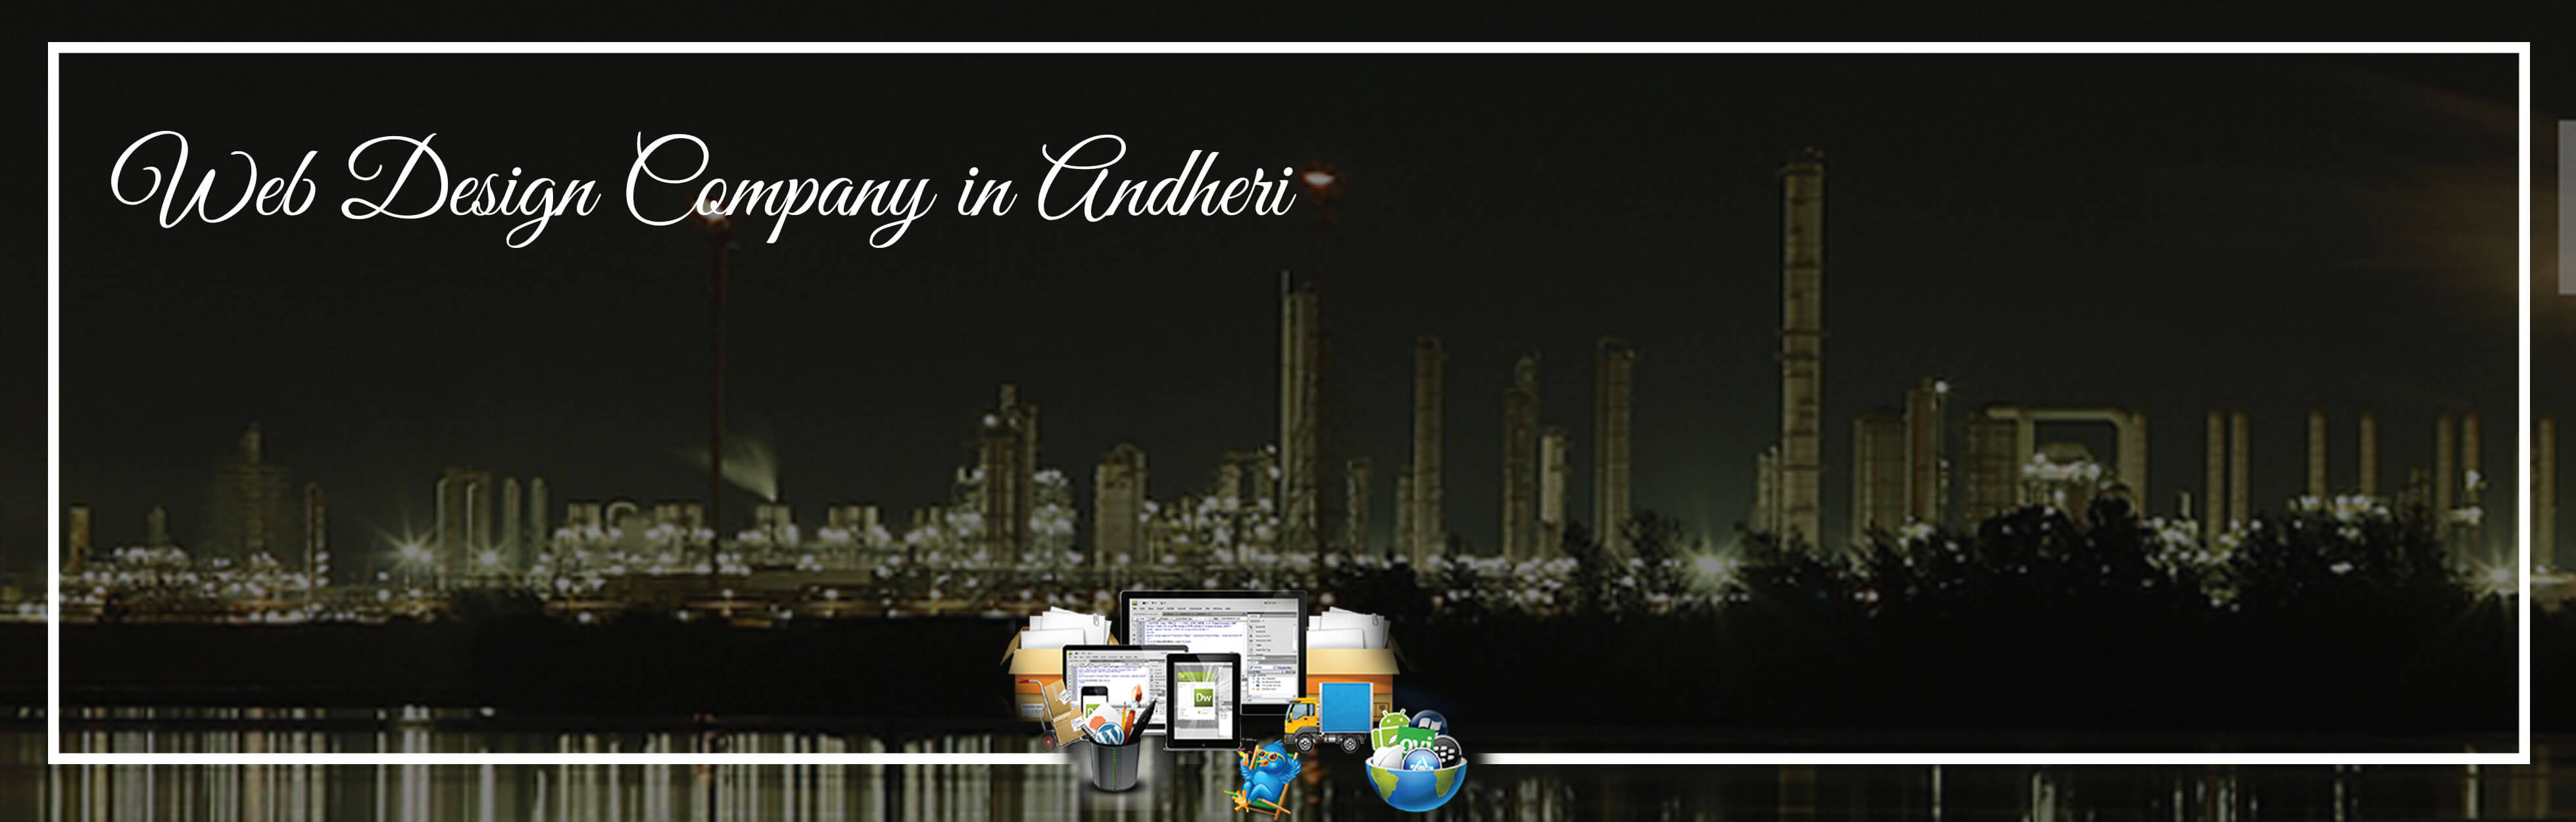 Website Designing Company in Andheri